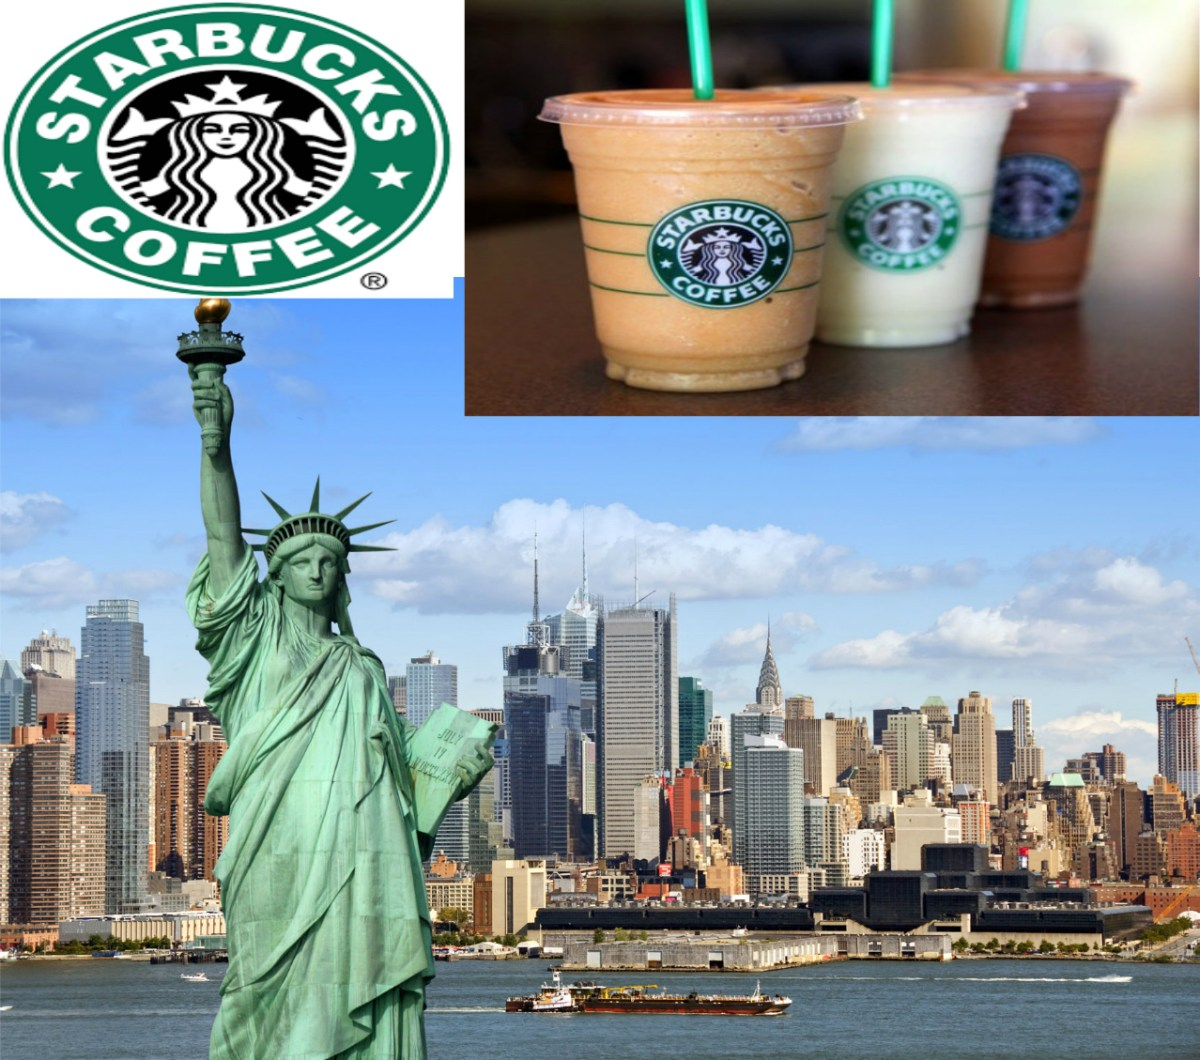 STARBUCK's on the Grind: Testing Its Delivery Service In New York